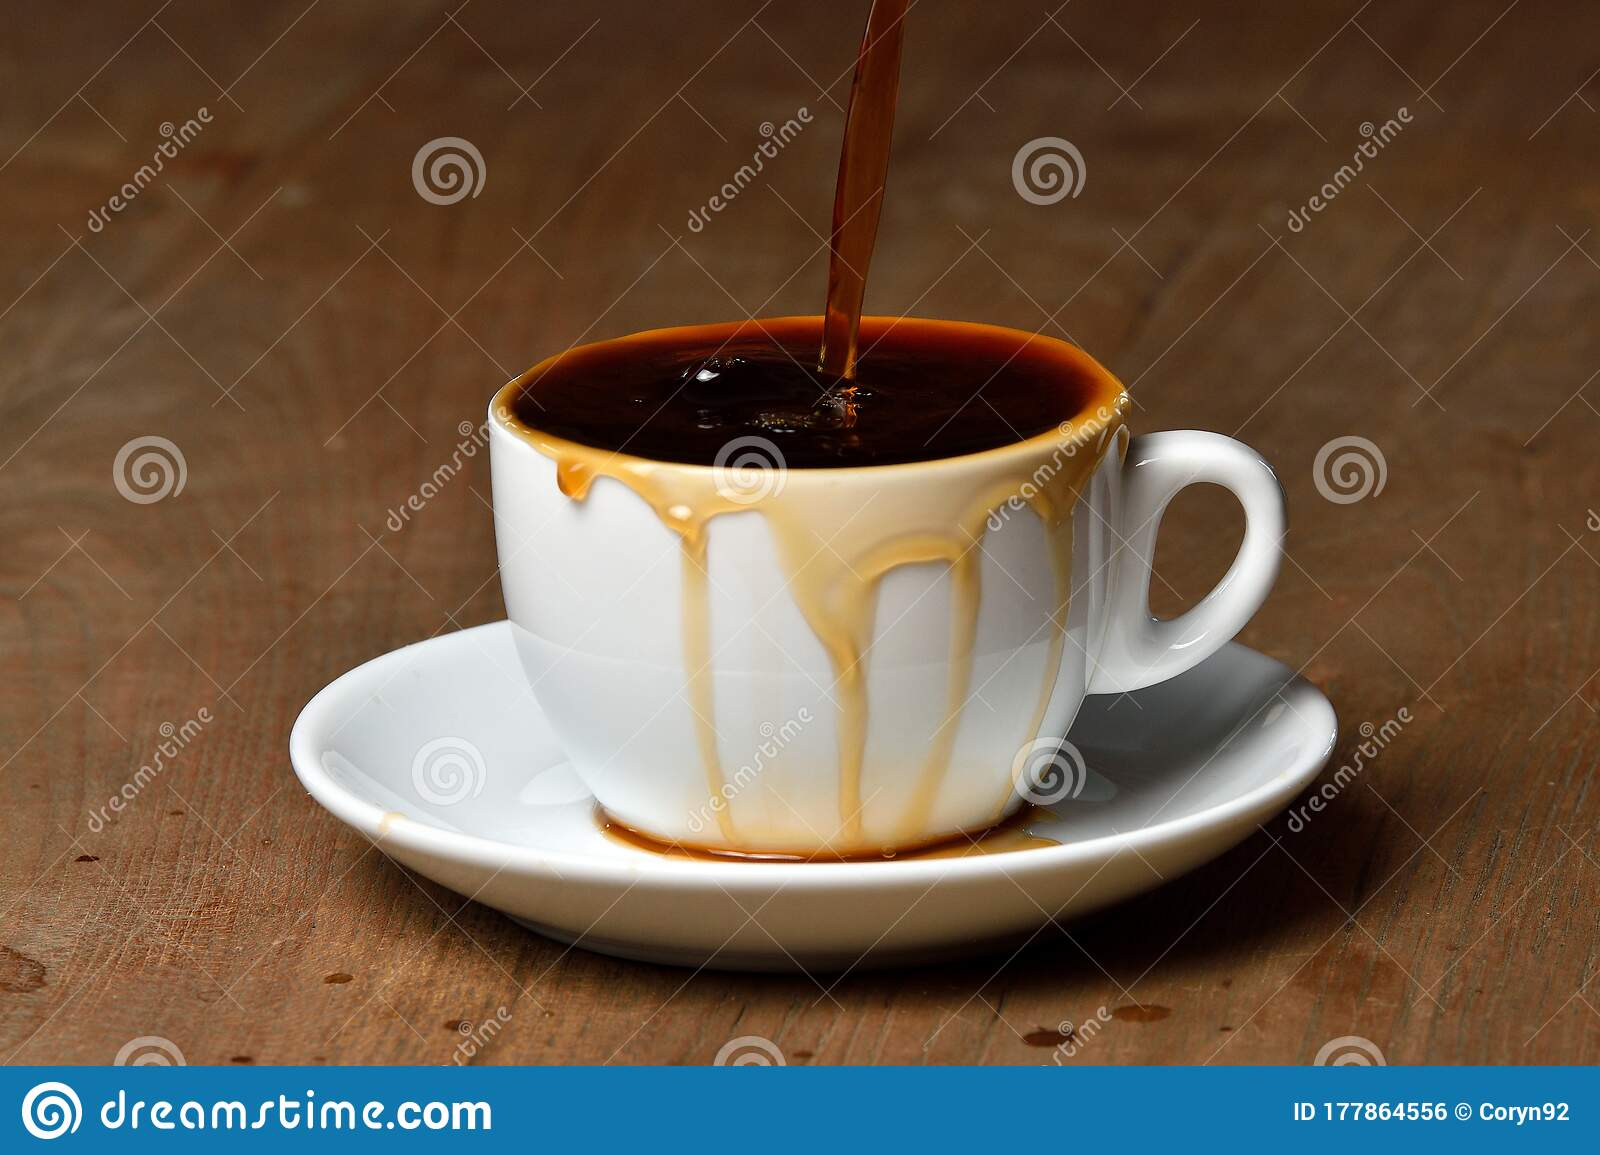 Pouring Coffee Into Overflowed White Porcelain Mug With Saucer Cup With Overflowing Coffee Full Cup Of Coffee On Wooden Table Stock Photo Image Of Cafeteria Food 177864556